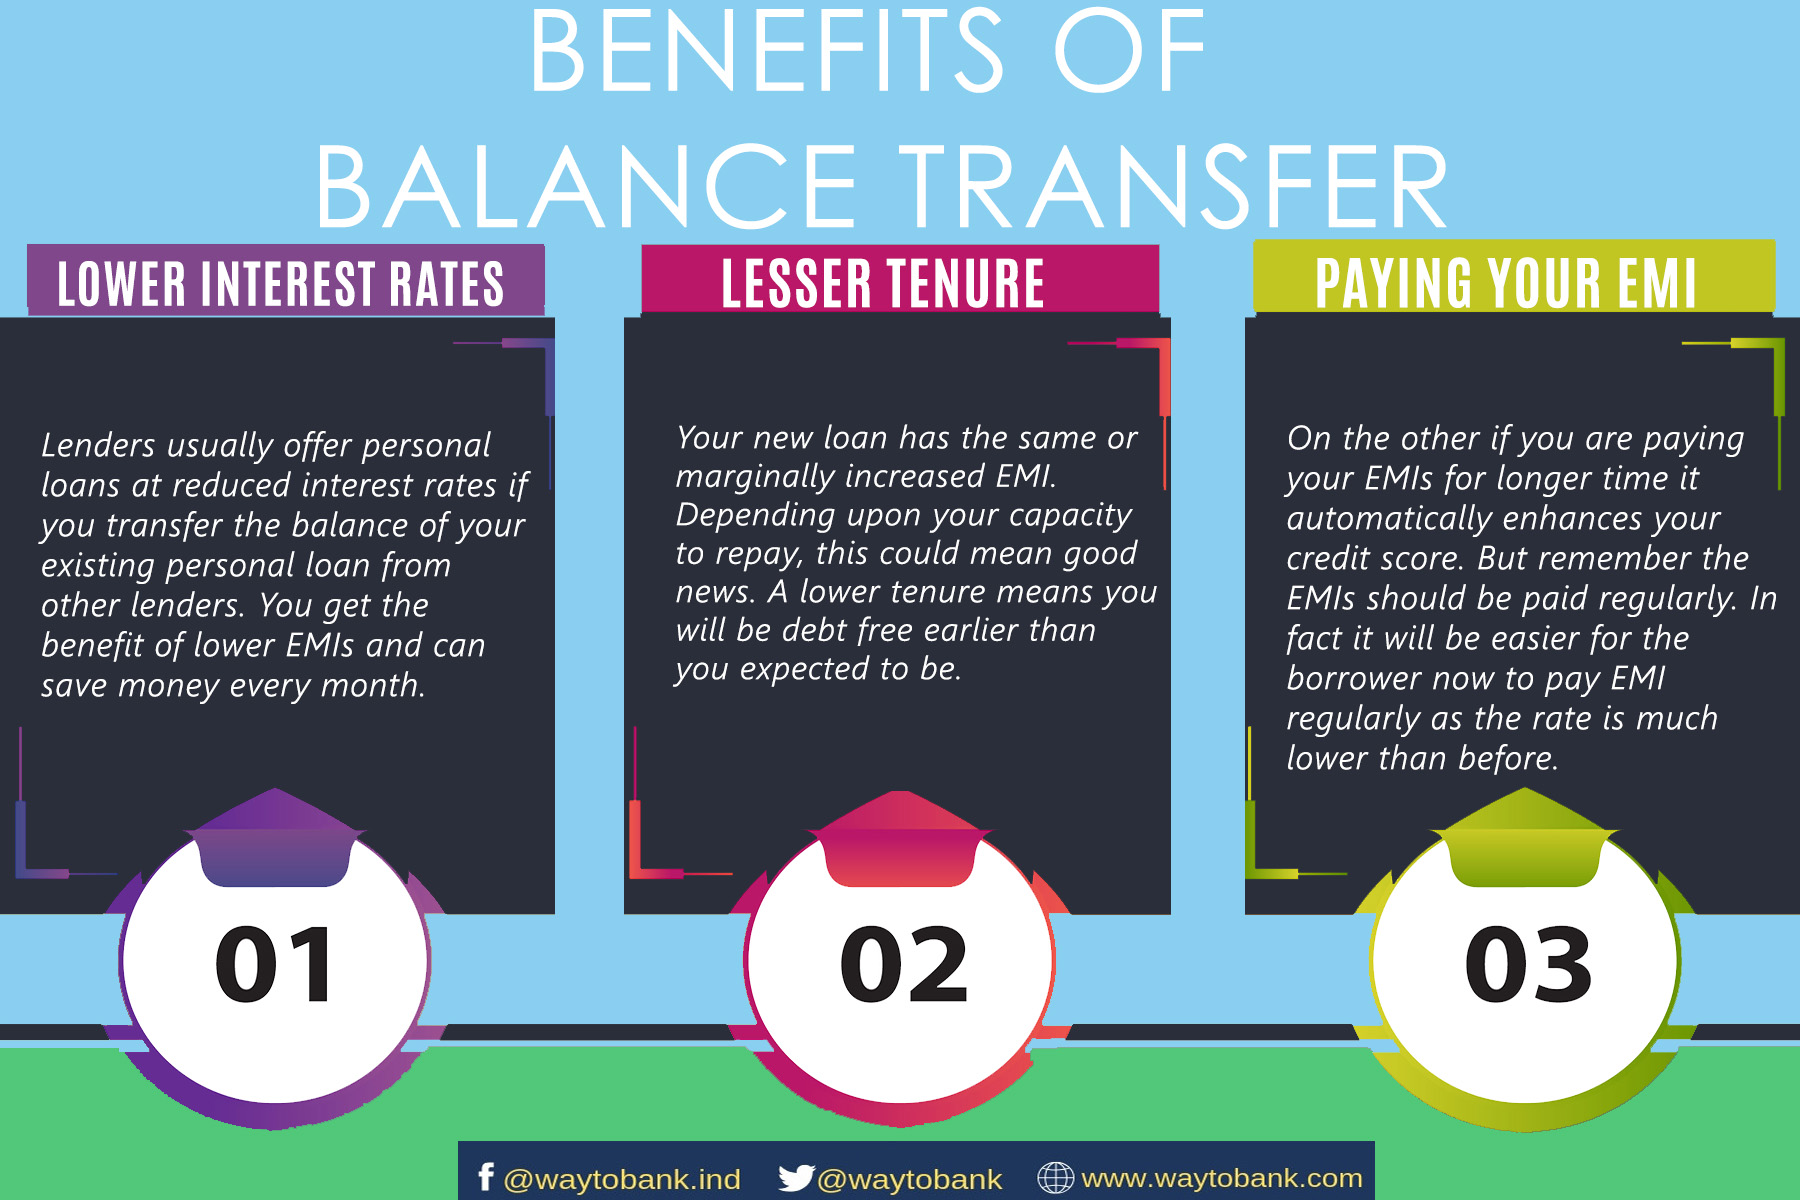 benefits of balance transfer loan